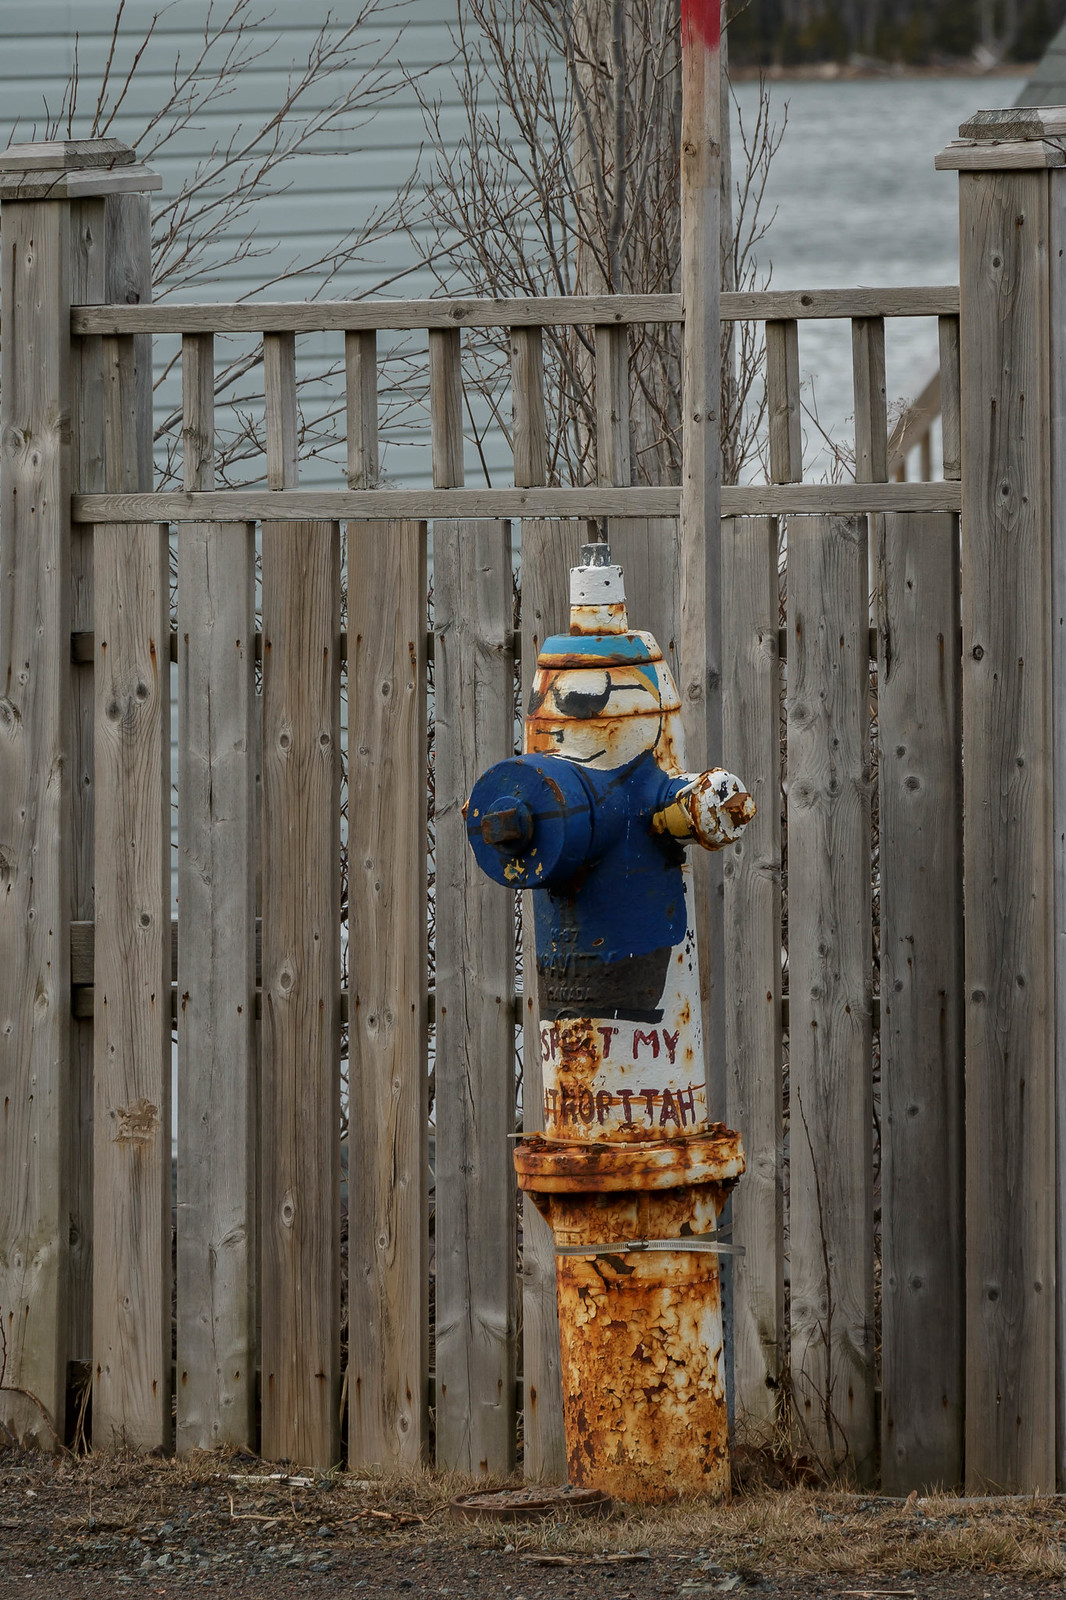 hydrant badly in need of a paint job